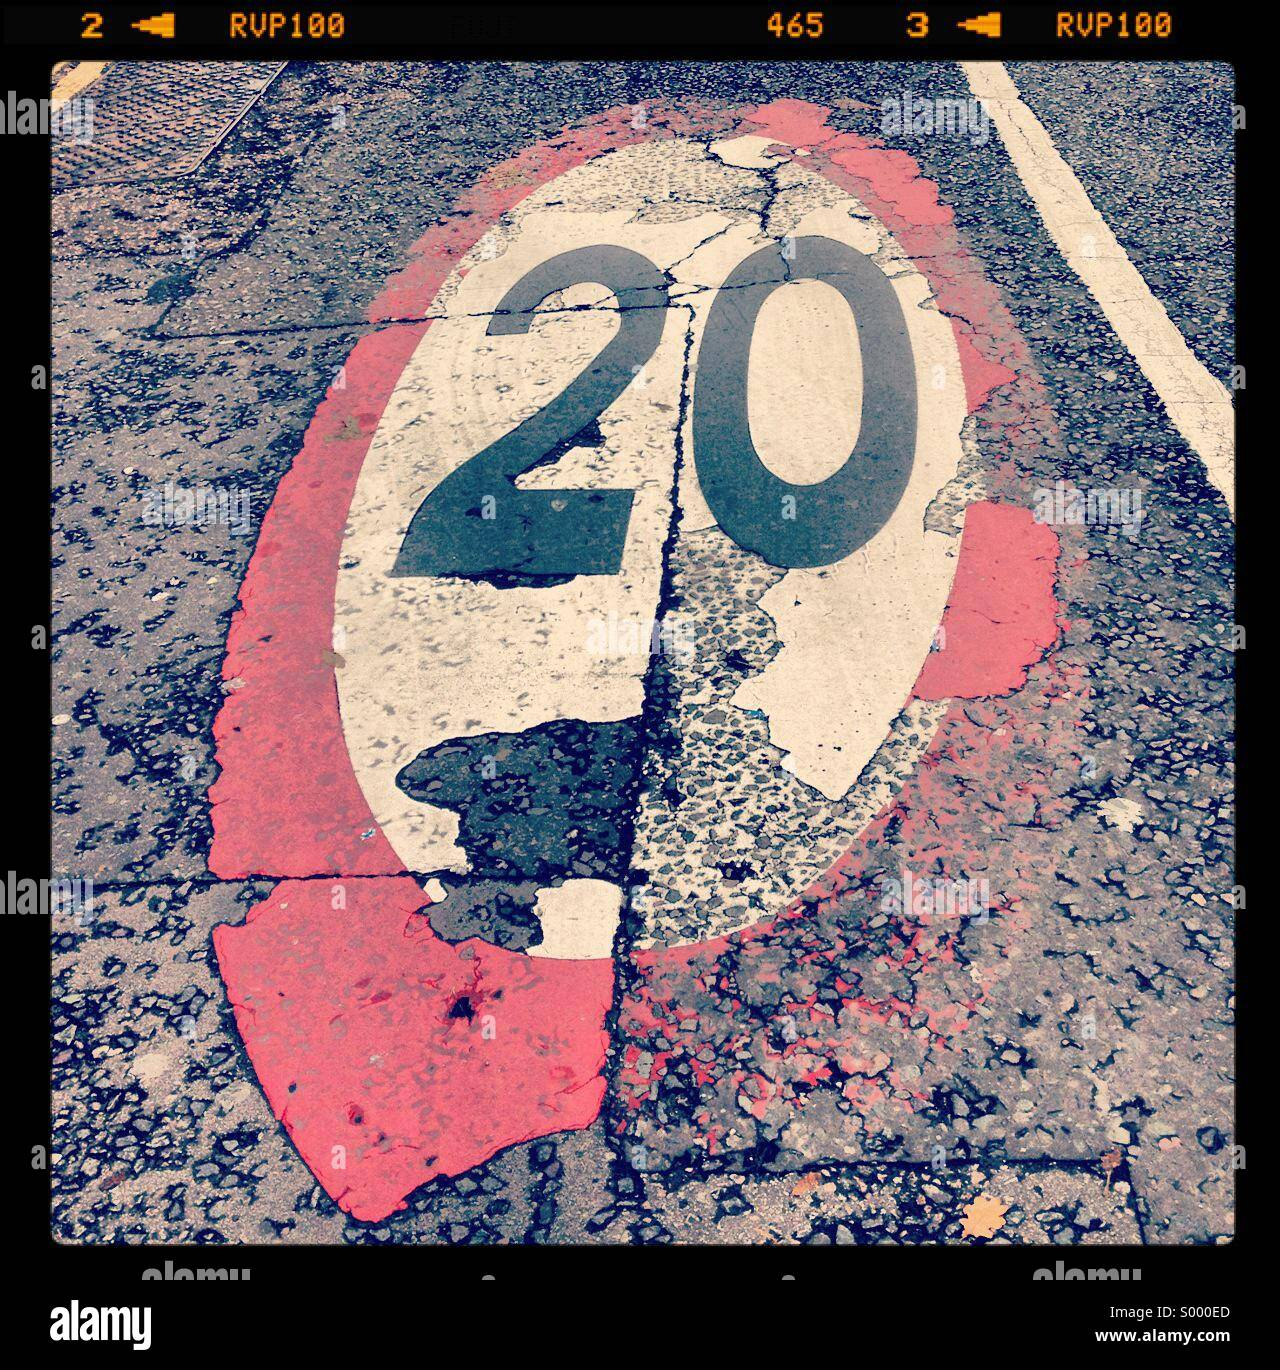 Twenty miles per hour marking on road, London, England - Stock Image